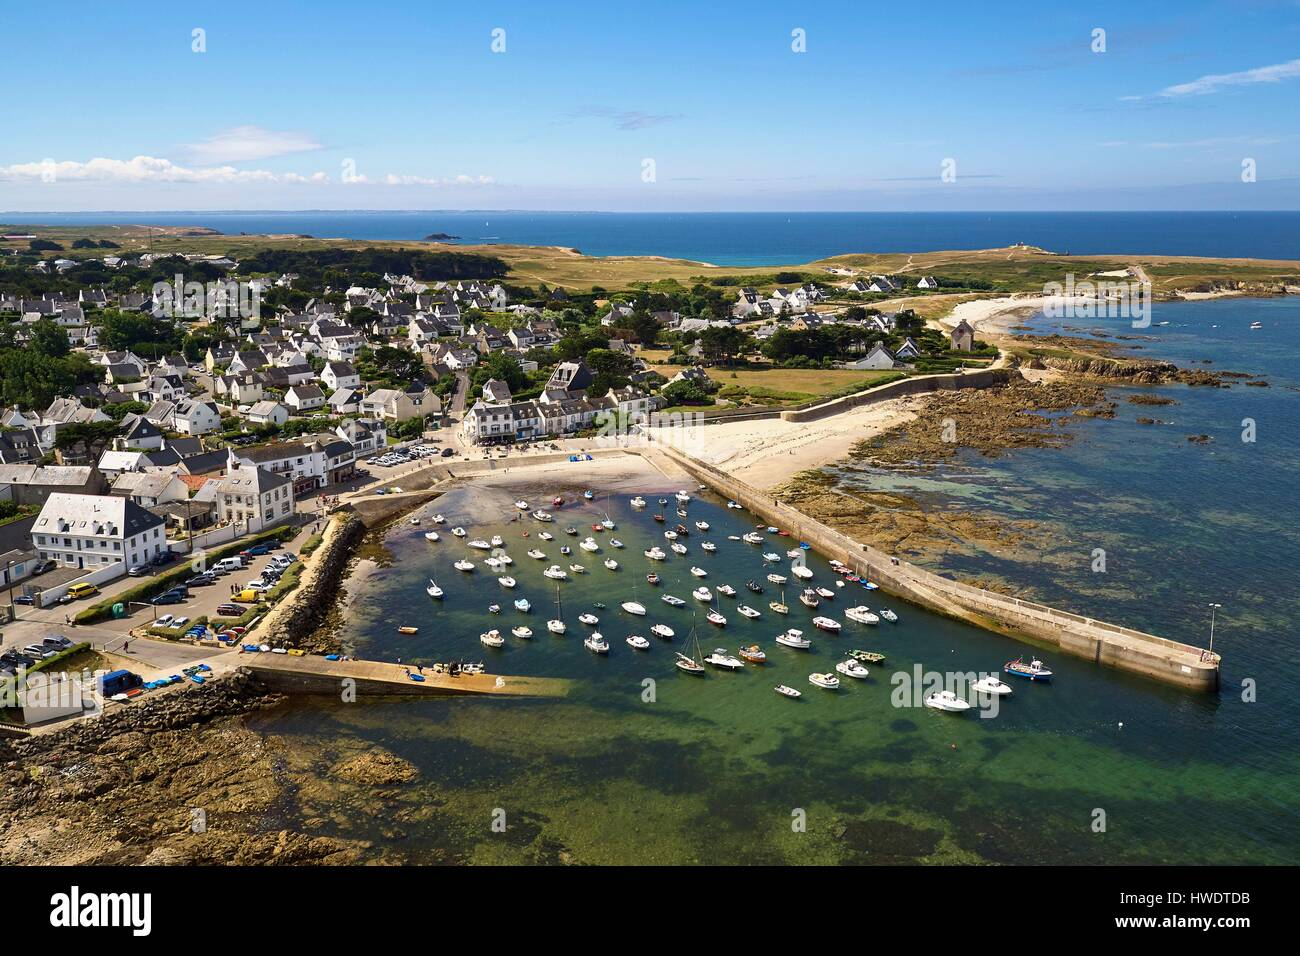 France morbihan quiberon peninsula saint pierre quiberon portivy stock photo 136143543 alamy - Office de tourisme saint pierre quiberon ...